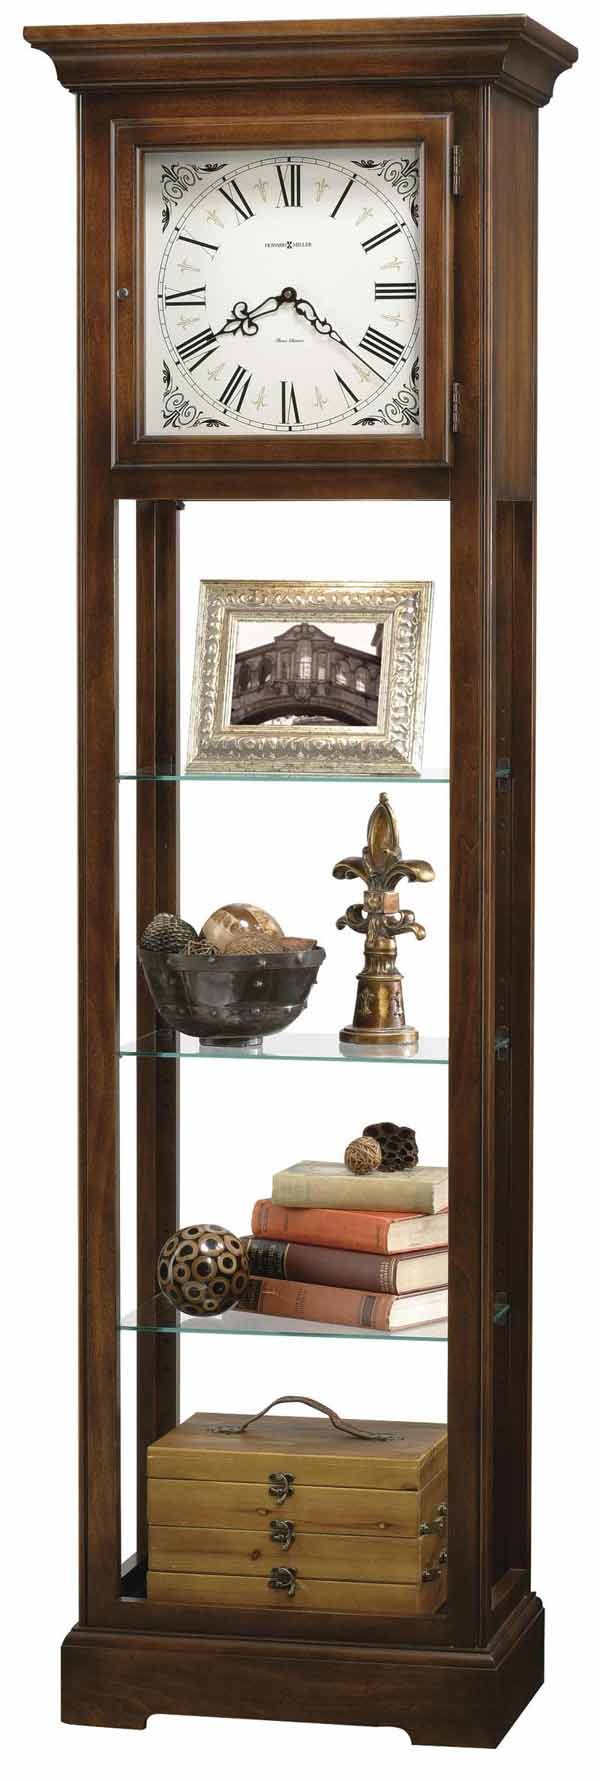 Detailed Image Of The Howard Miller Lerose 611 148 Quartz Curio Grandfather Clock